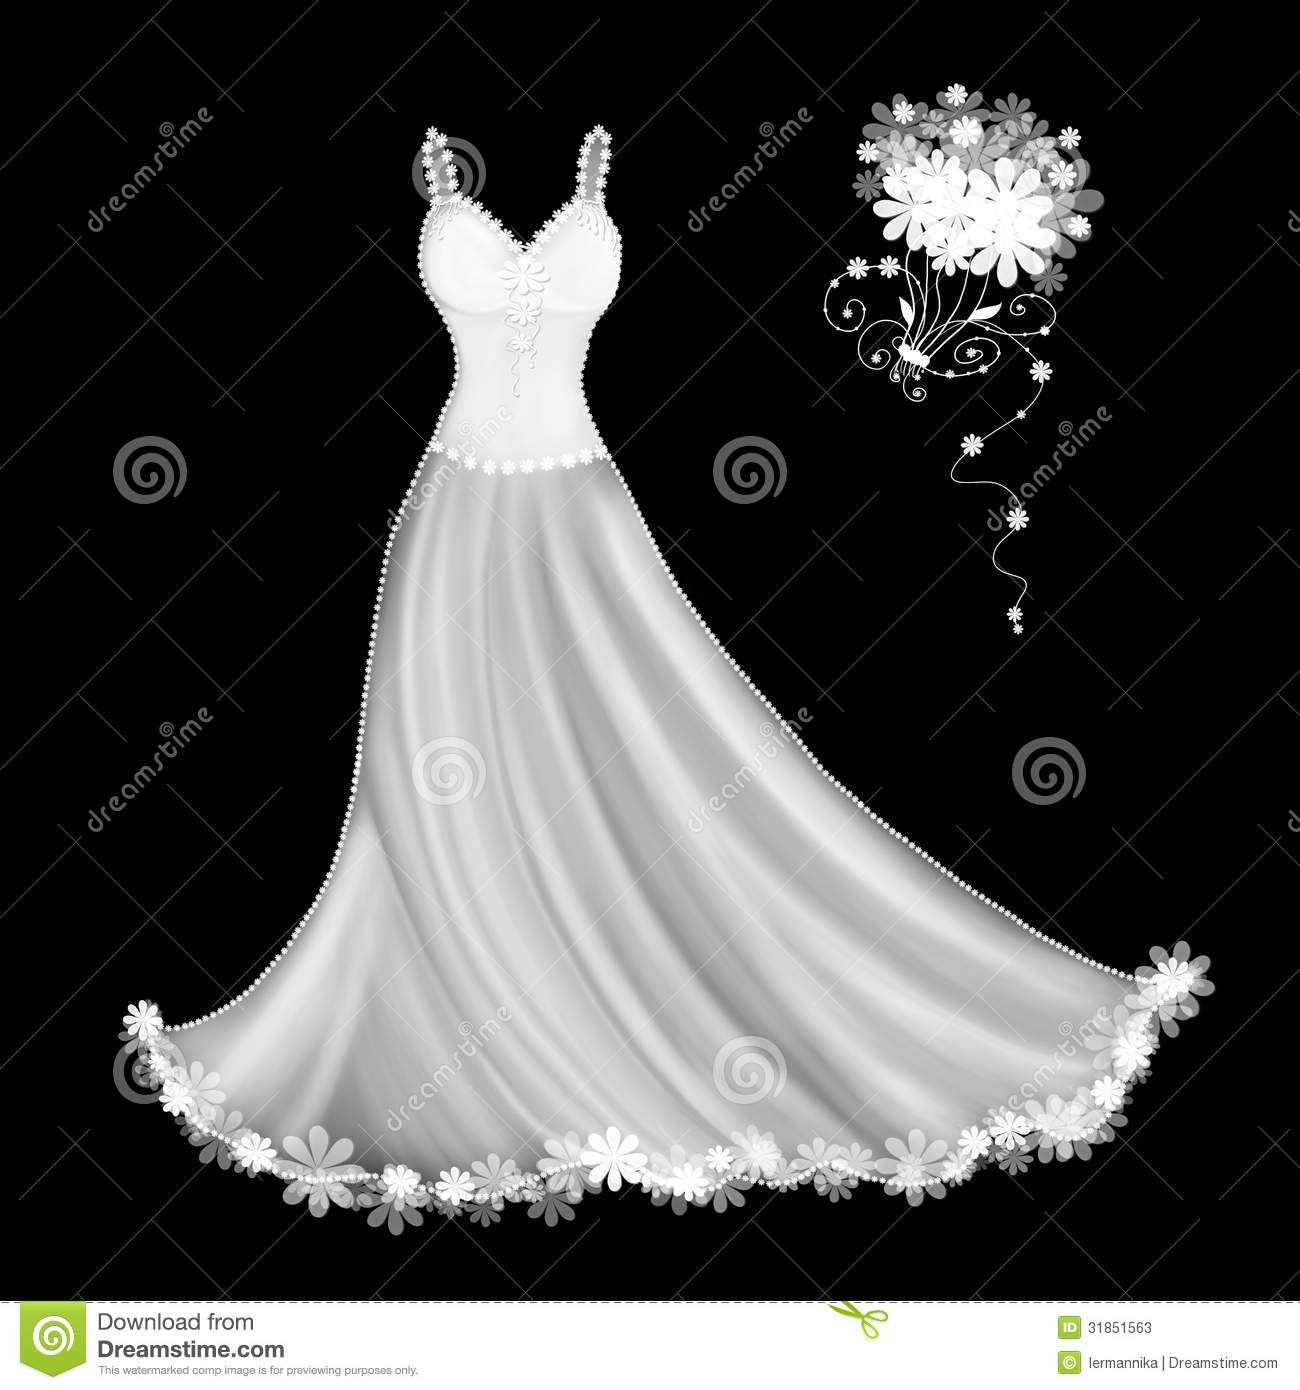 Yello n white dress draing